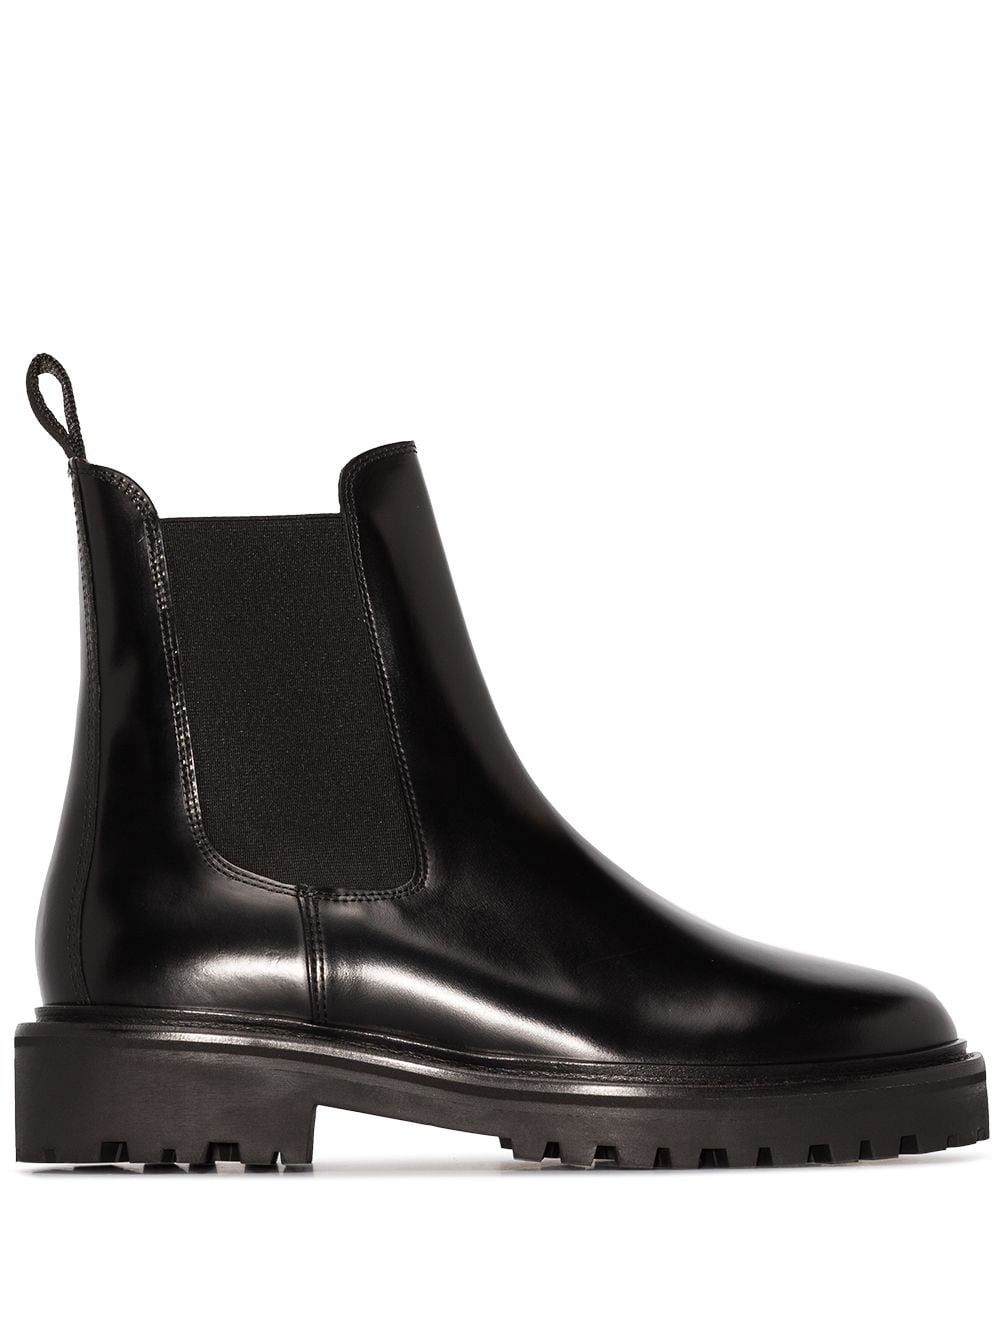 <p class='small-title'>ISABEL MARANT</p>Chelsea Boots Black Leather